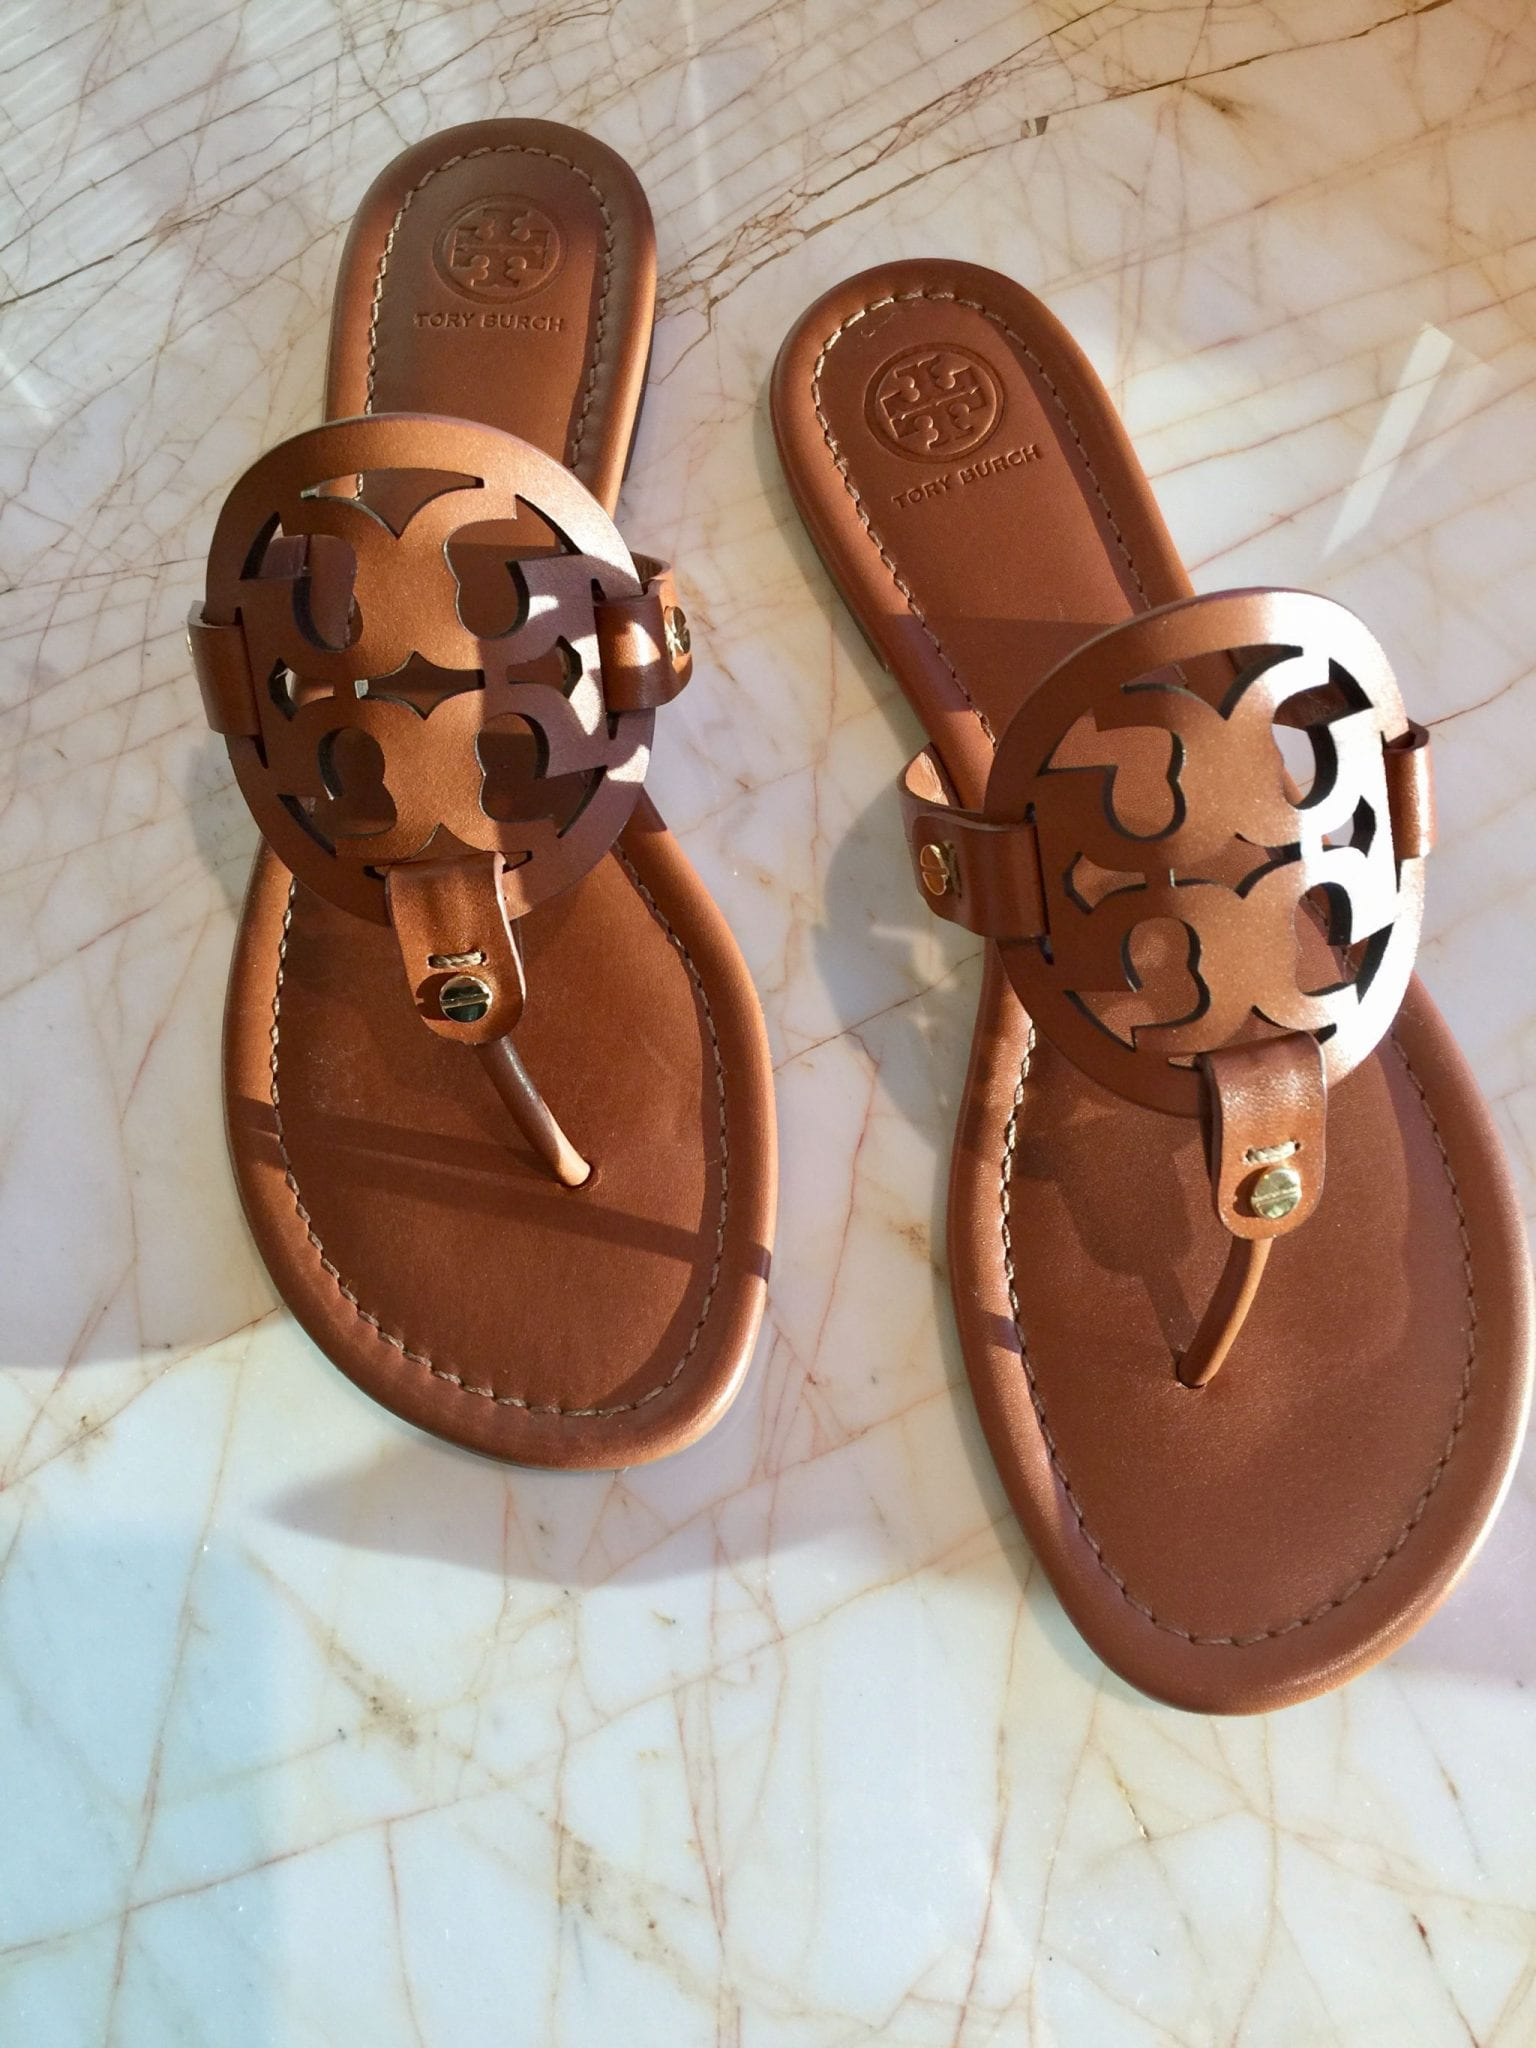 7fef84e7e9c My Summer Sandals  Tory Burch Miller Sandal in Vintage Vachetta Leather